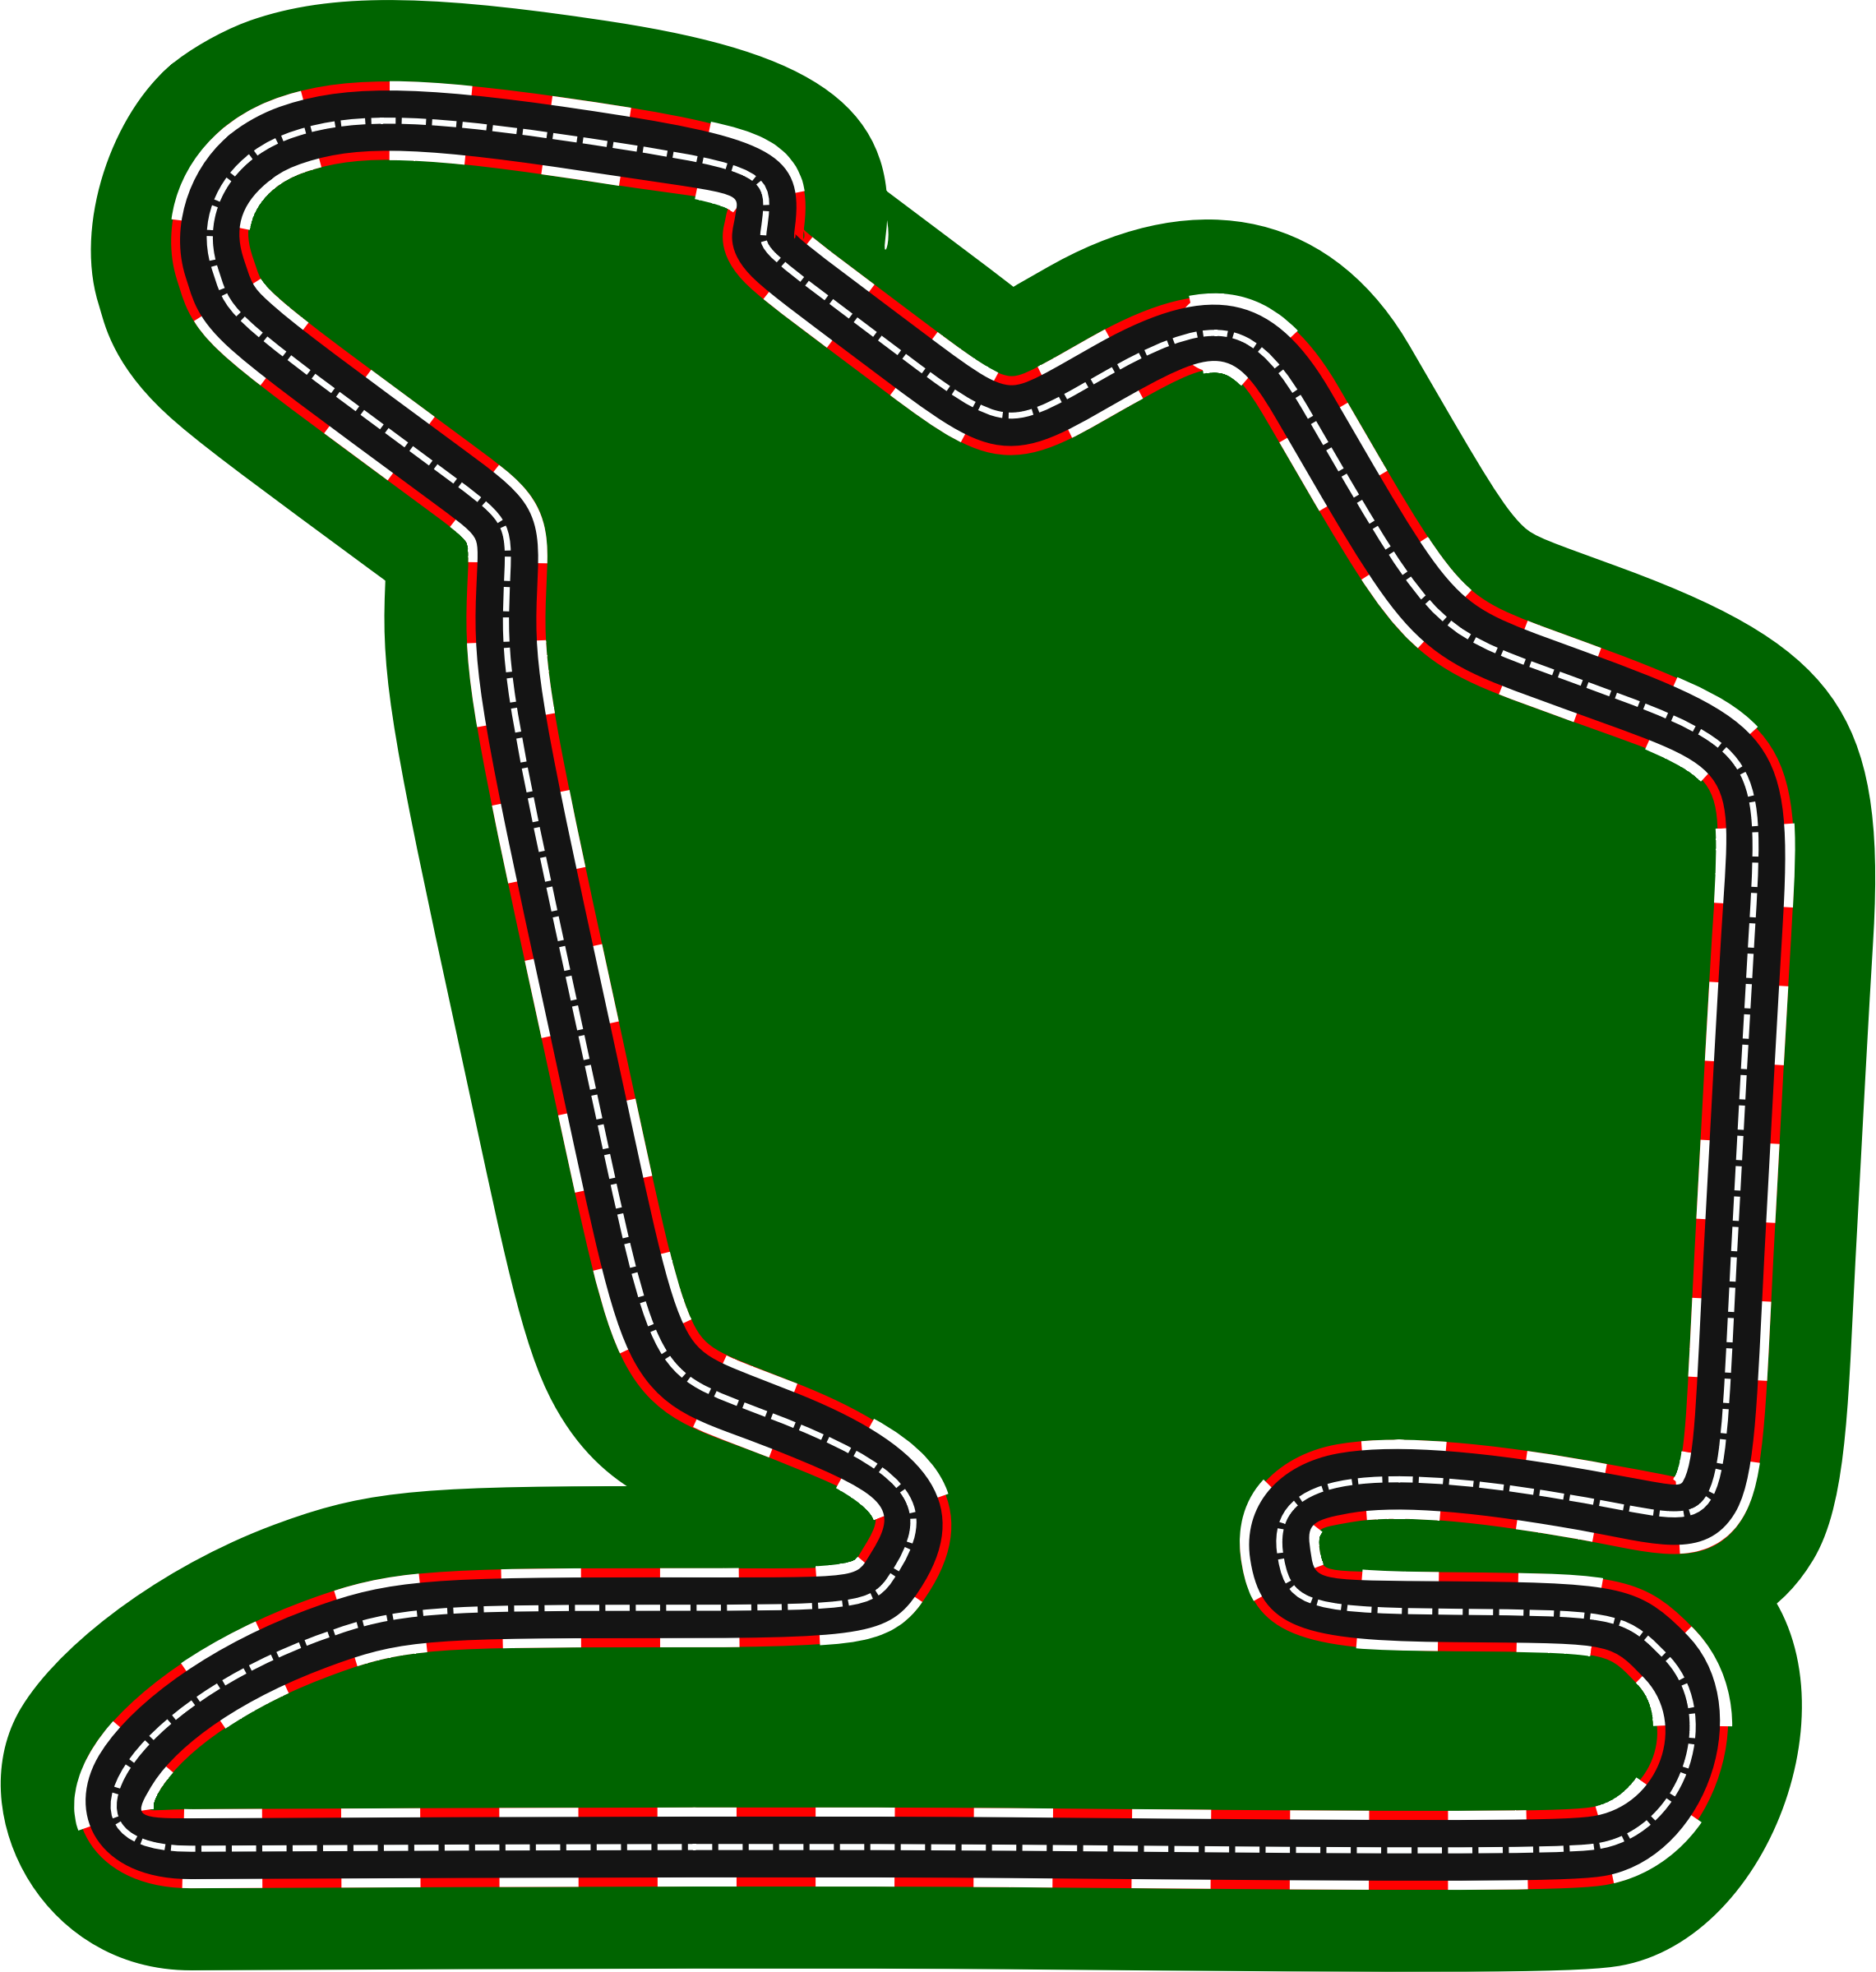 F1 circuits 2014-2018 - Hungaroring (version 2) by Firkin